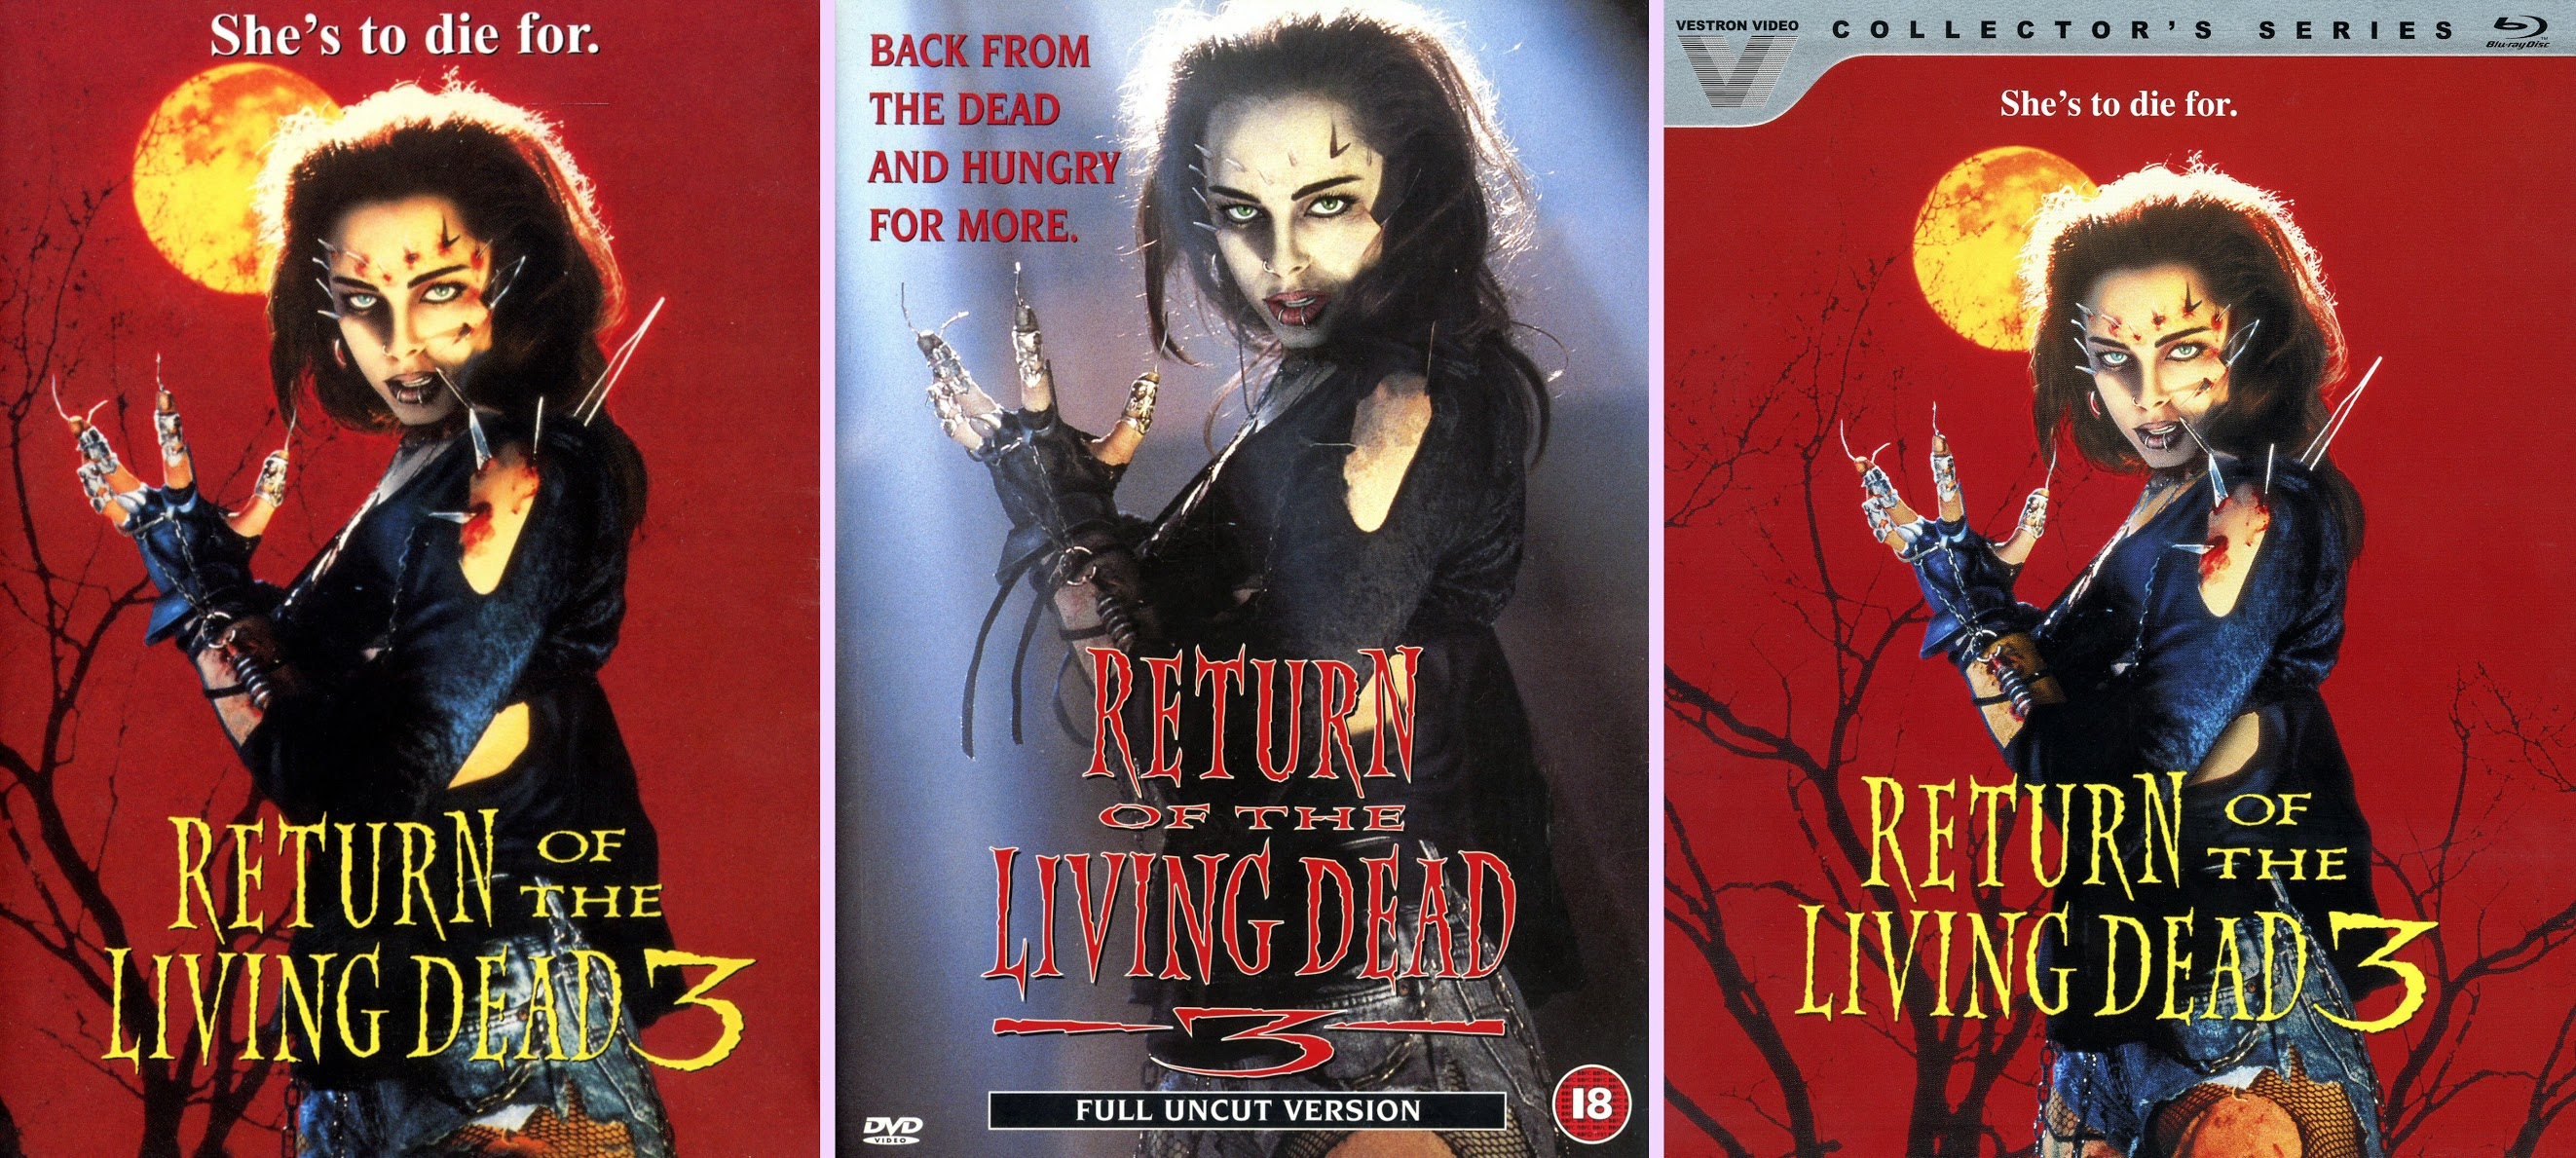 Most of you guys if you ve found your way to this blog probably already know the rough deal with return of the living dead 3 the us disc from lions gate